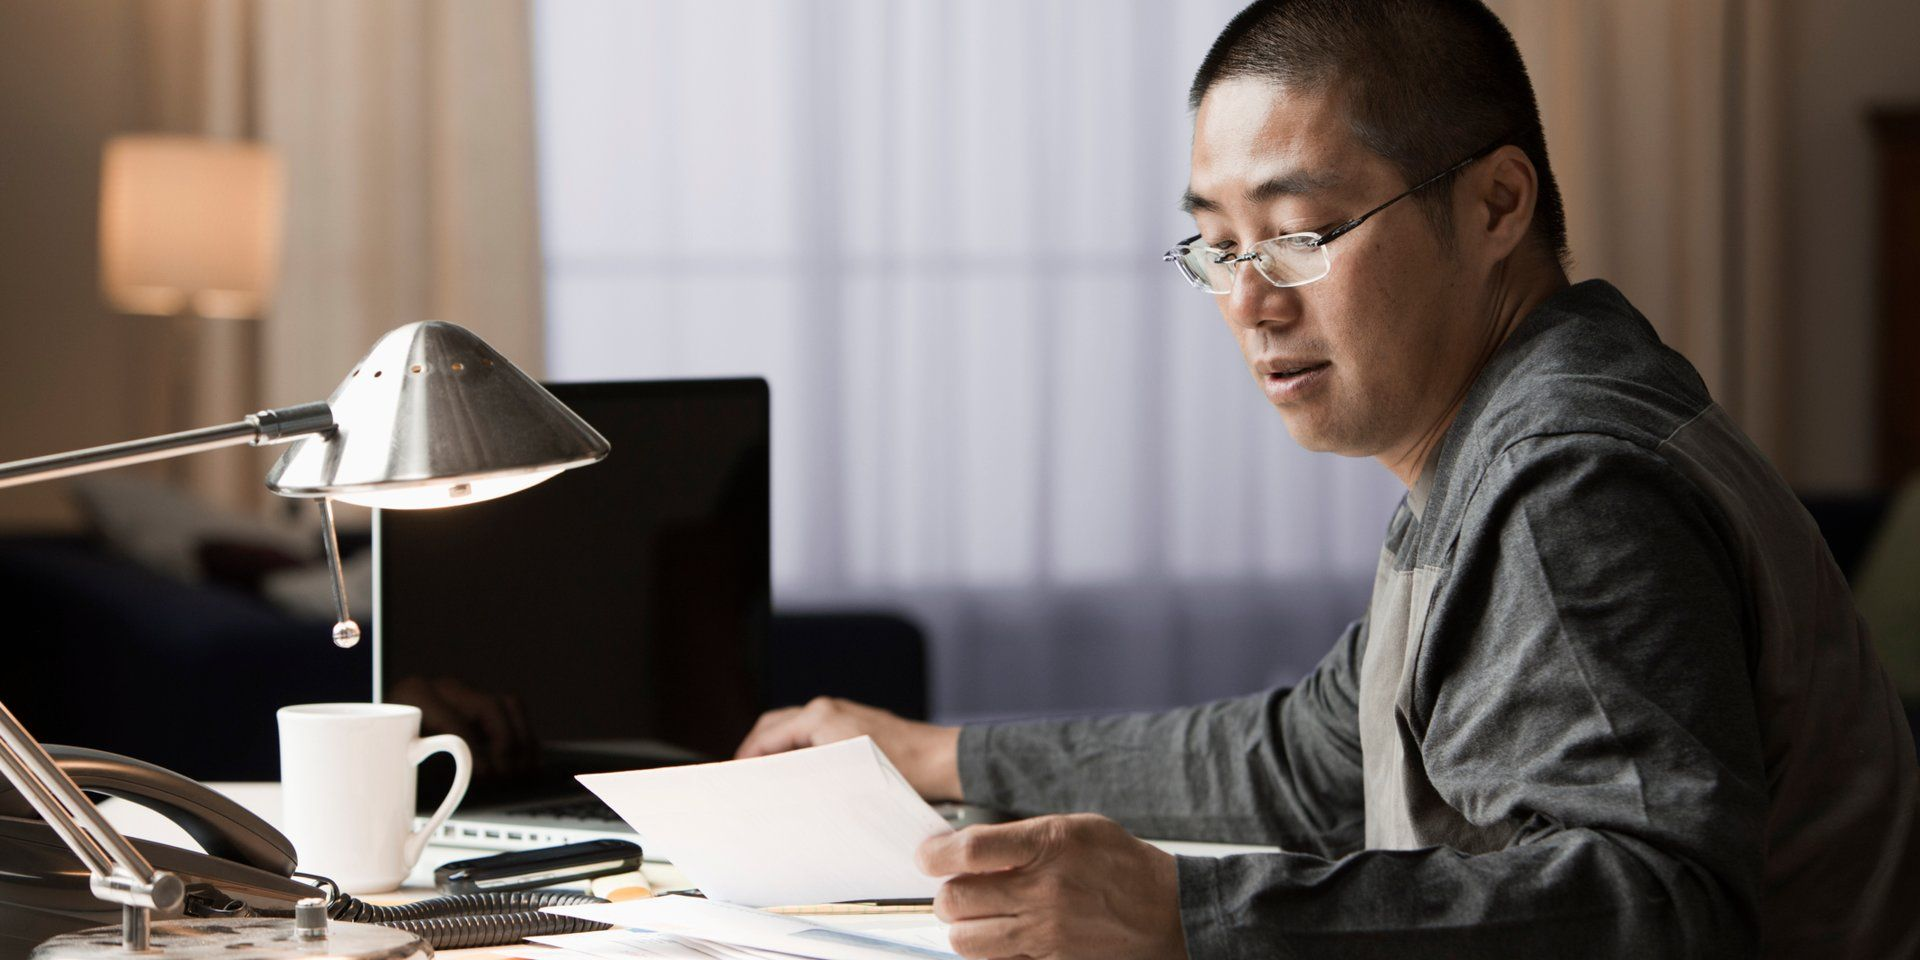 How to get a tax ID number if you're selfemployed or have